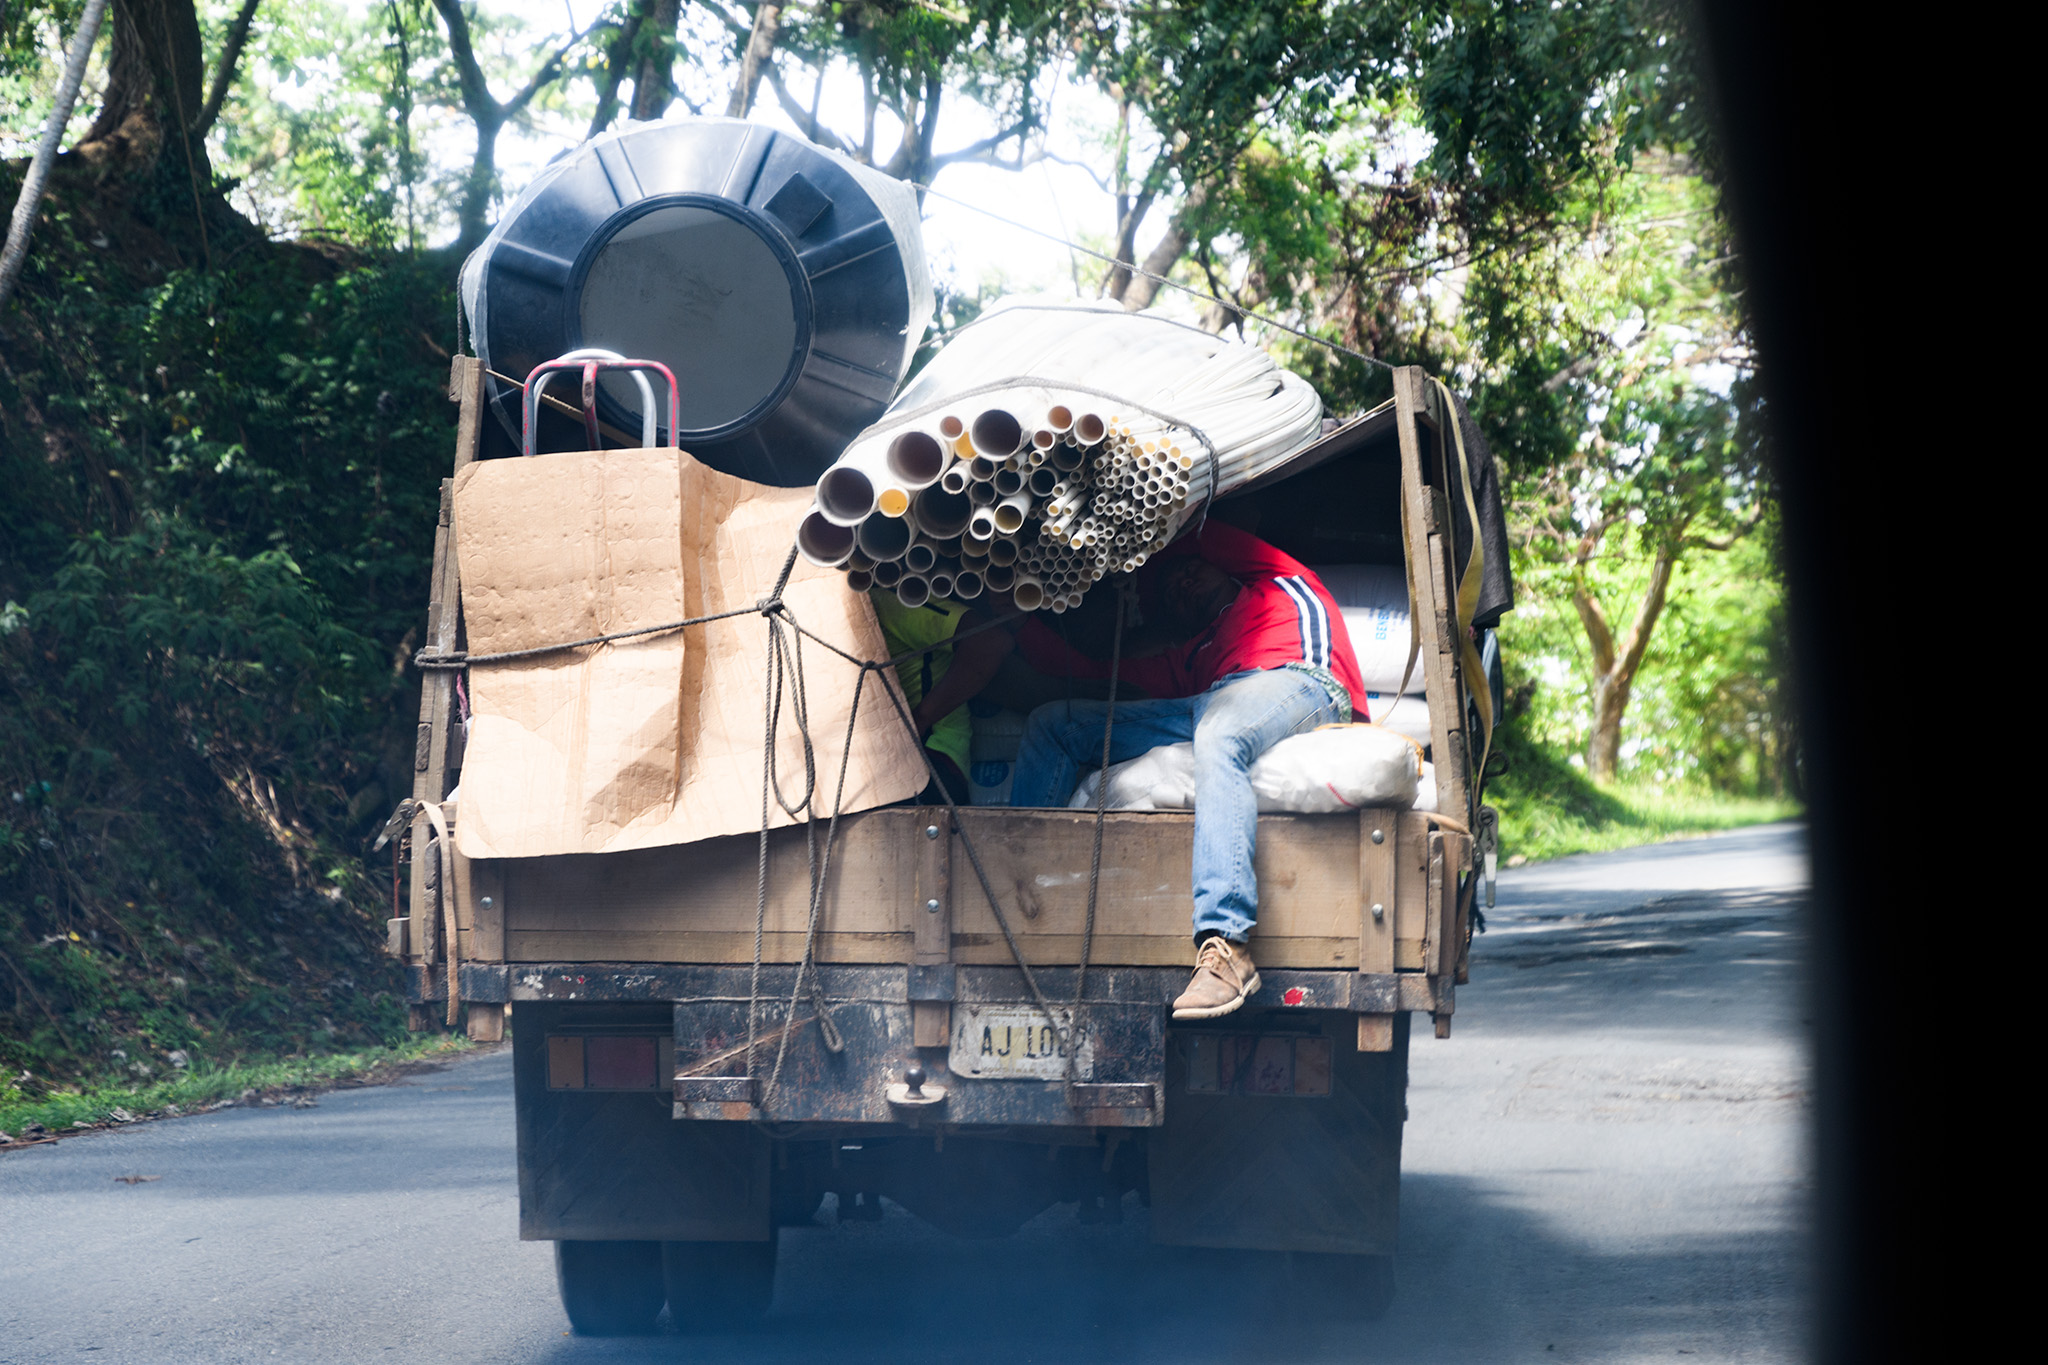 Delivery of supplies for more development somewhere on the island!